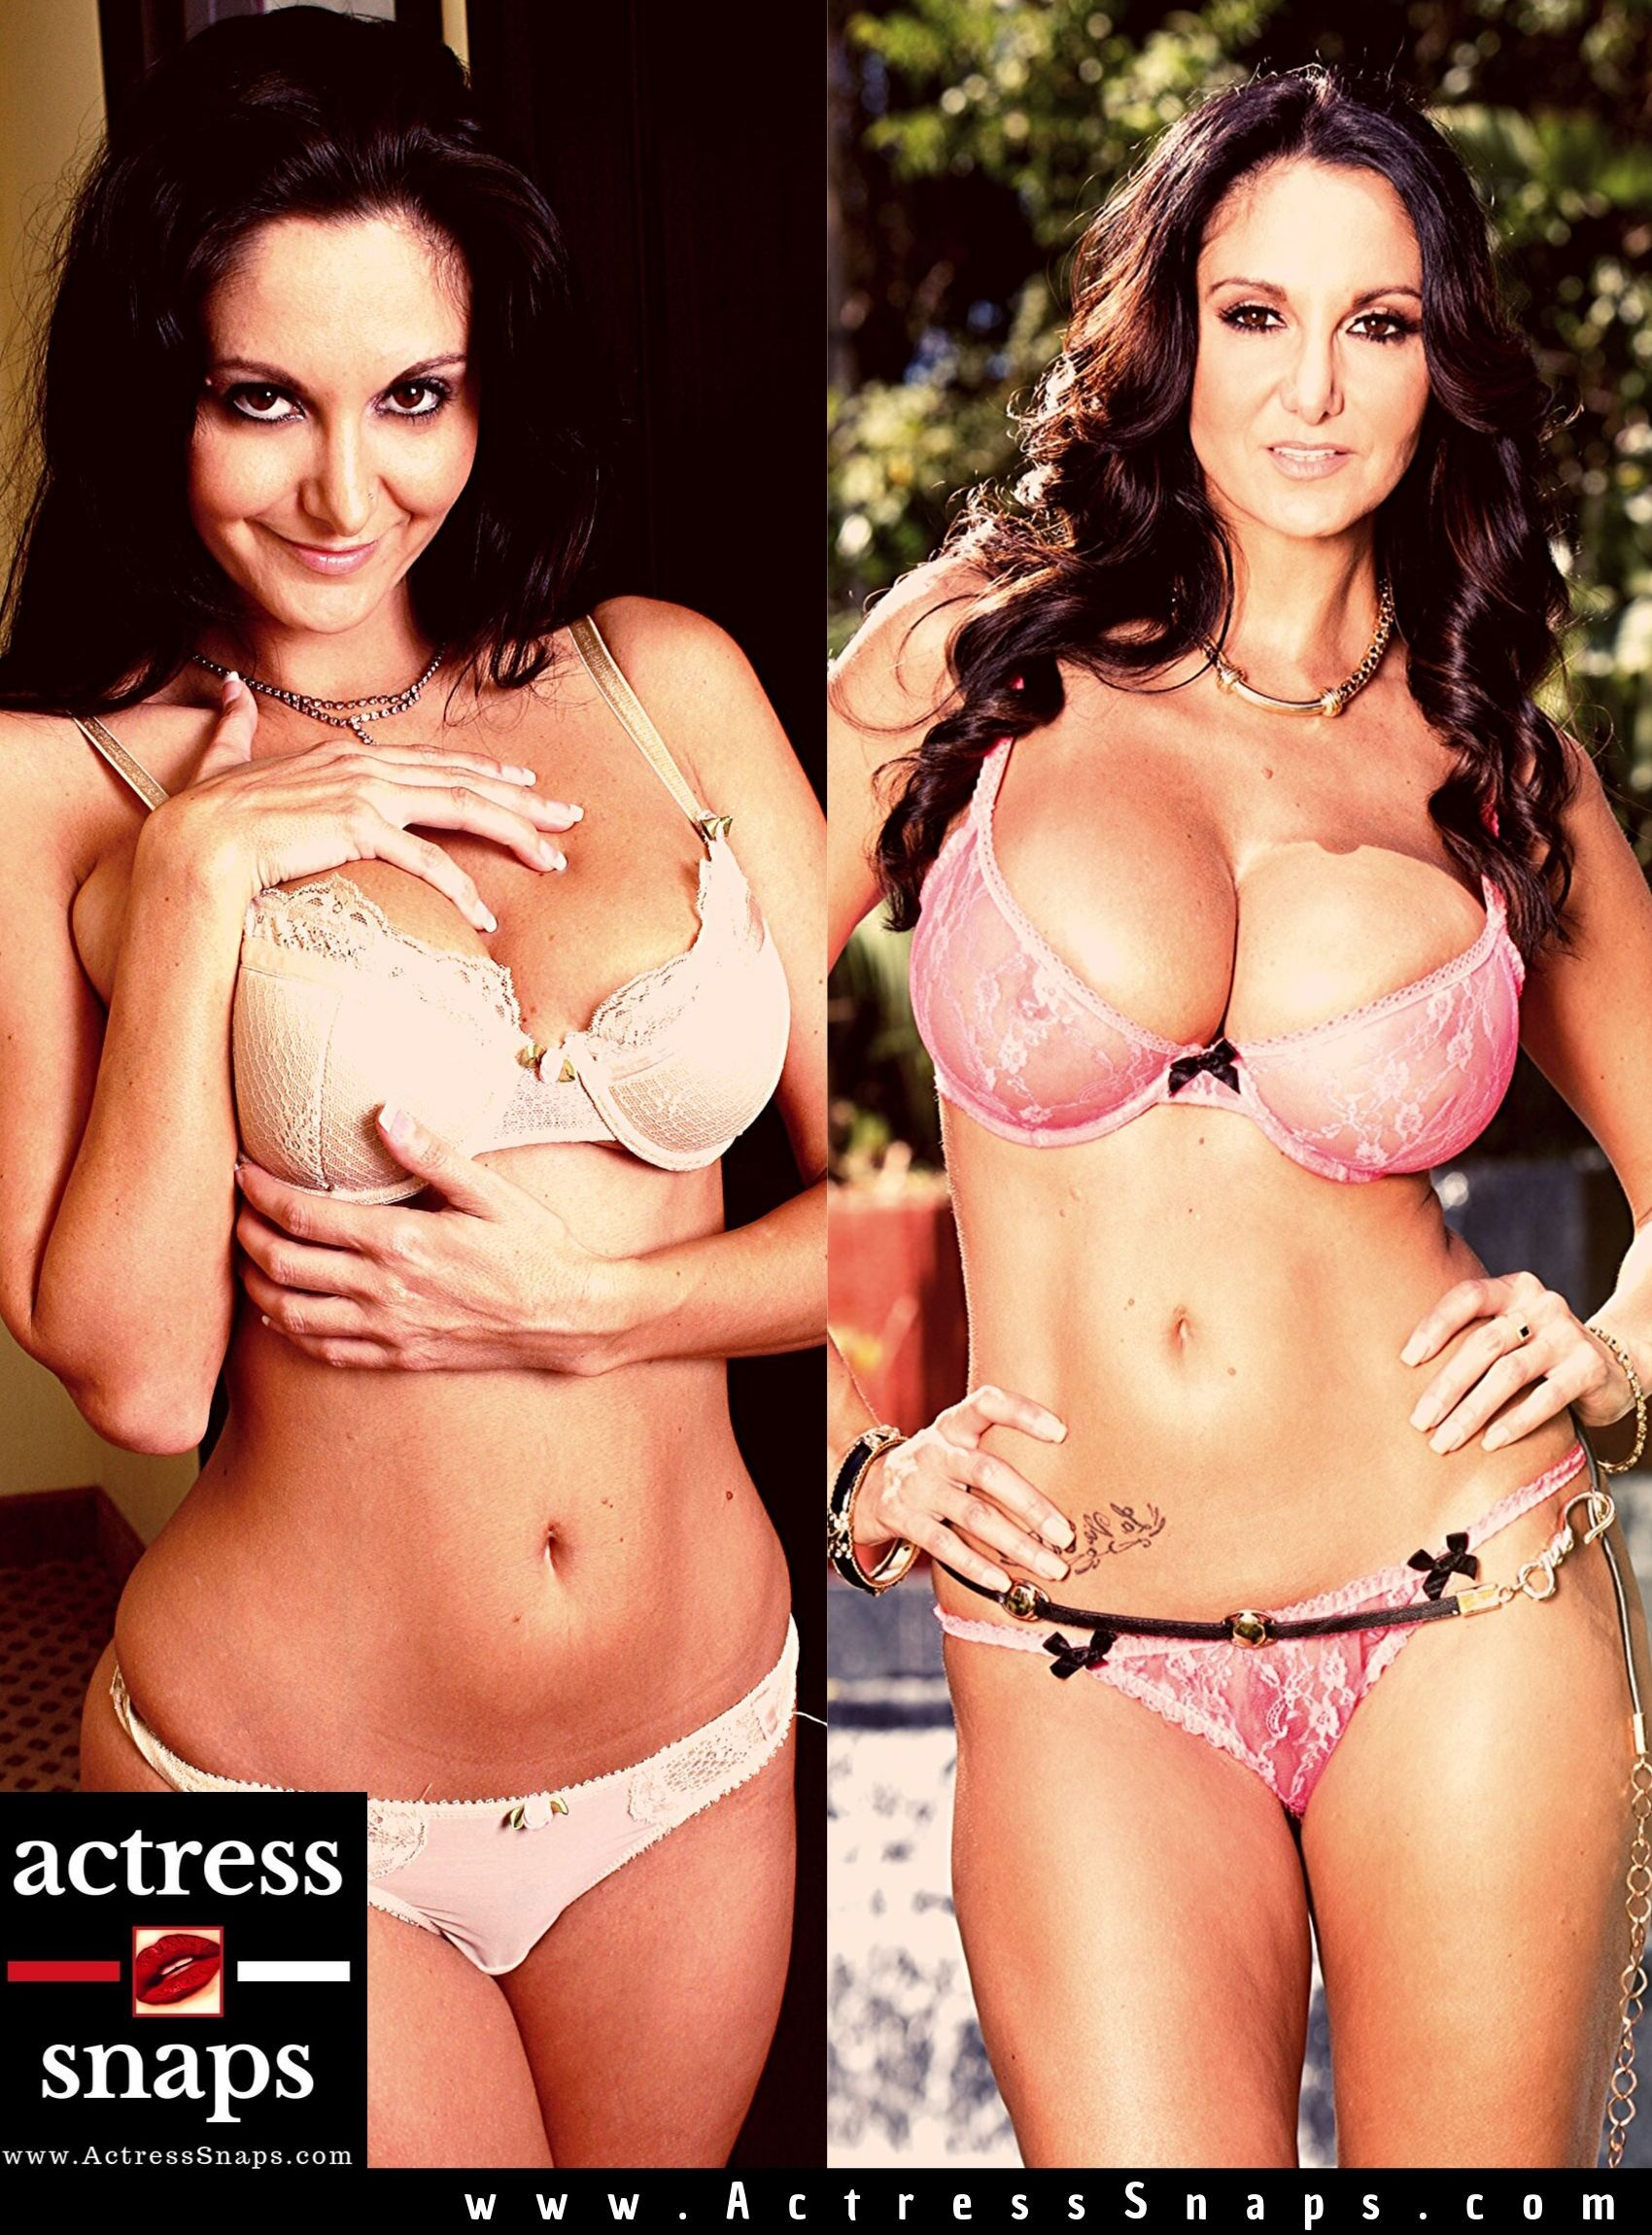 Sexy Ava Addams Photo Collection - Sexy Actress Pictures | Hot Actress Pictures - ActressSnaps.com